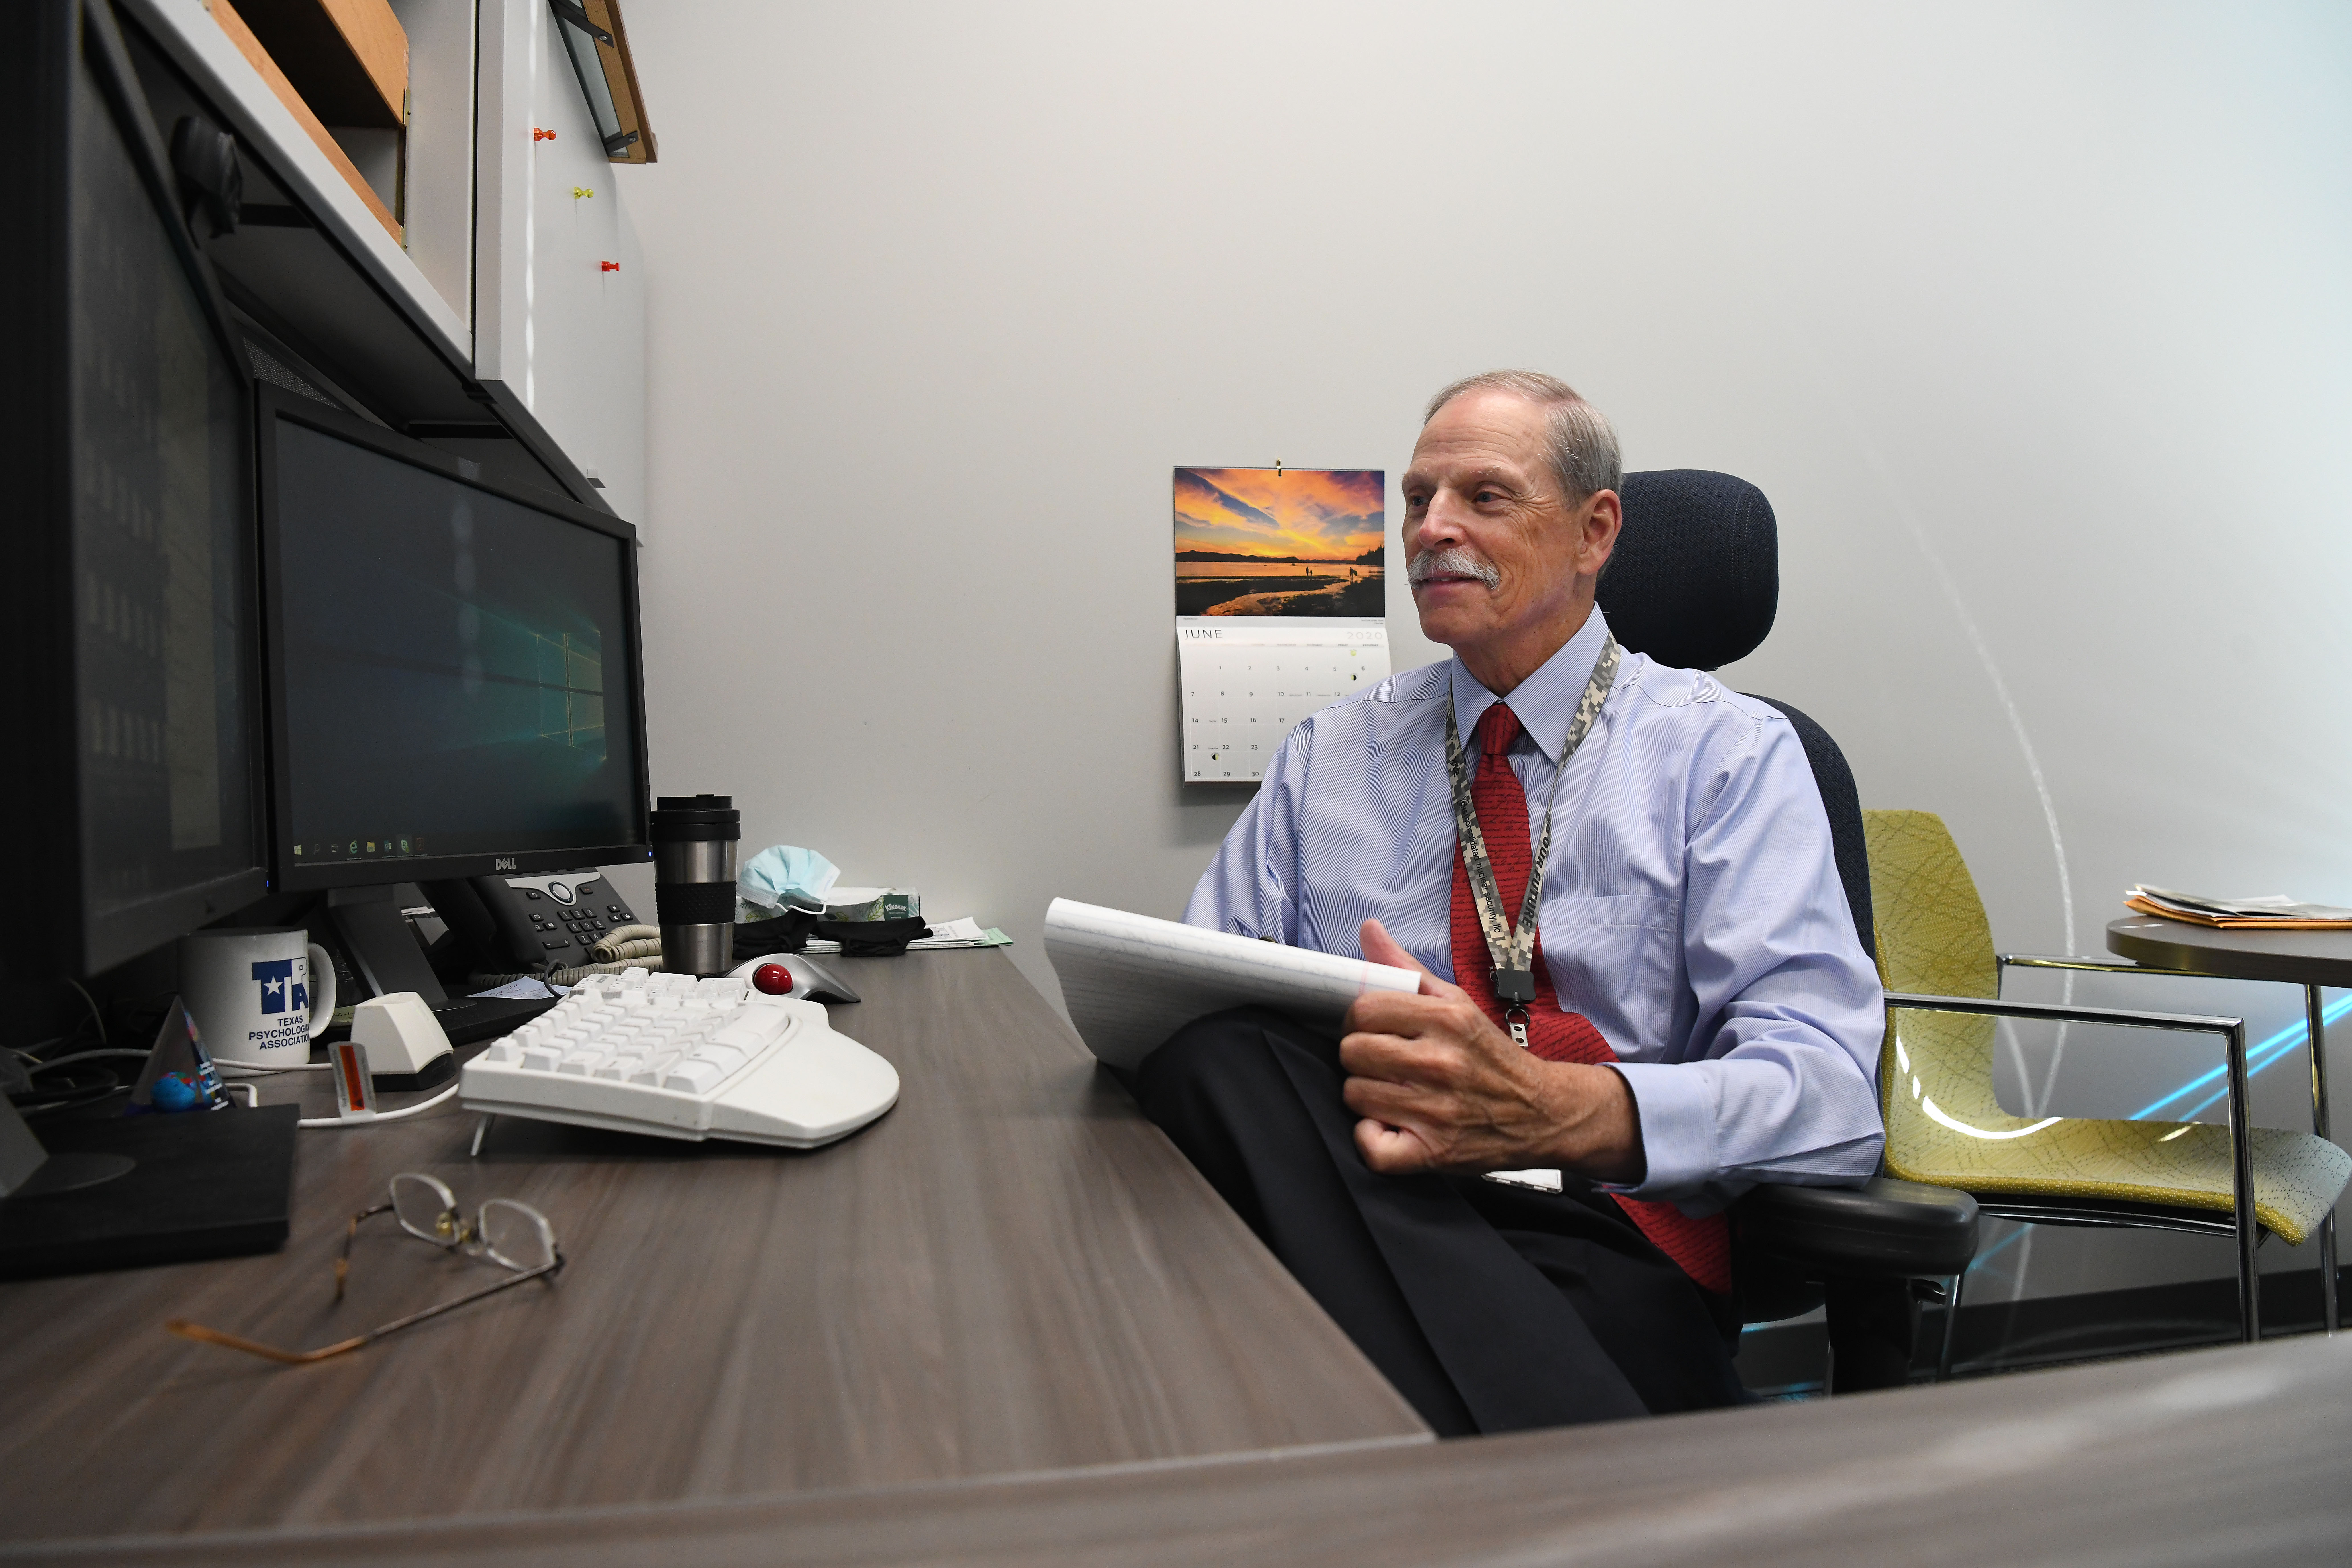 Dr. Mark Izzard conducts a telepsychology session from his office at Pantex.